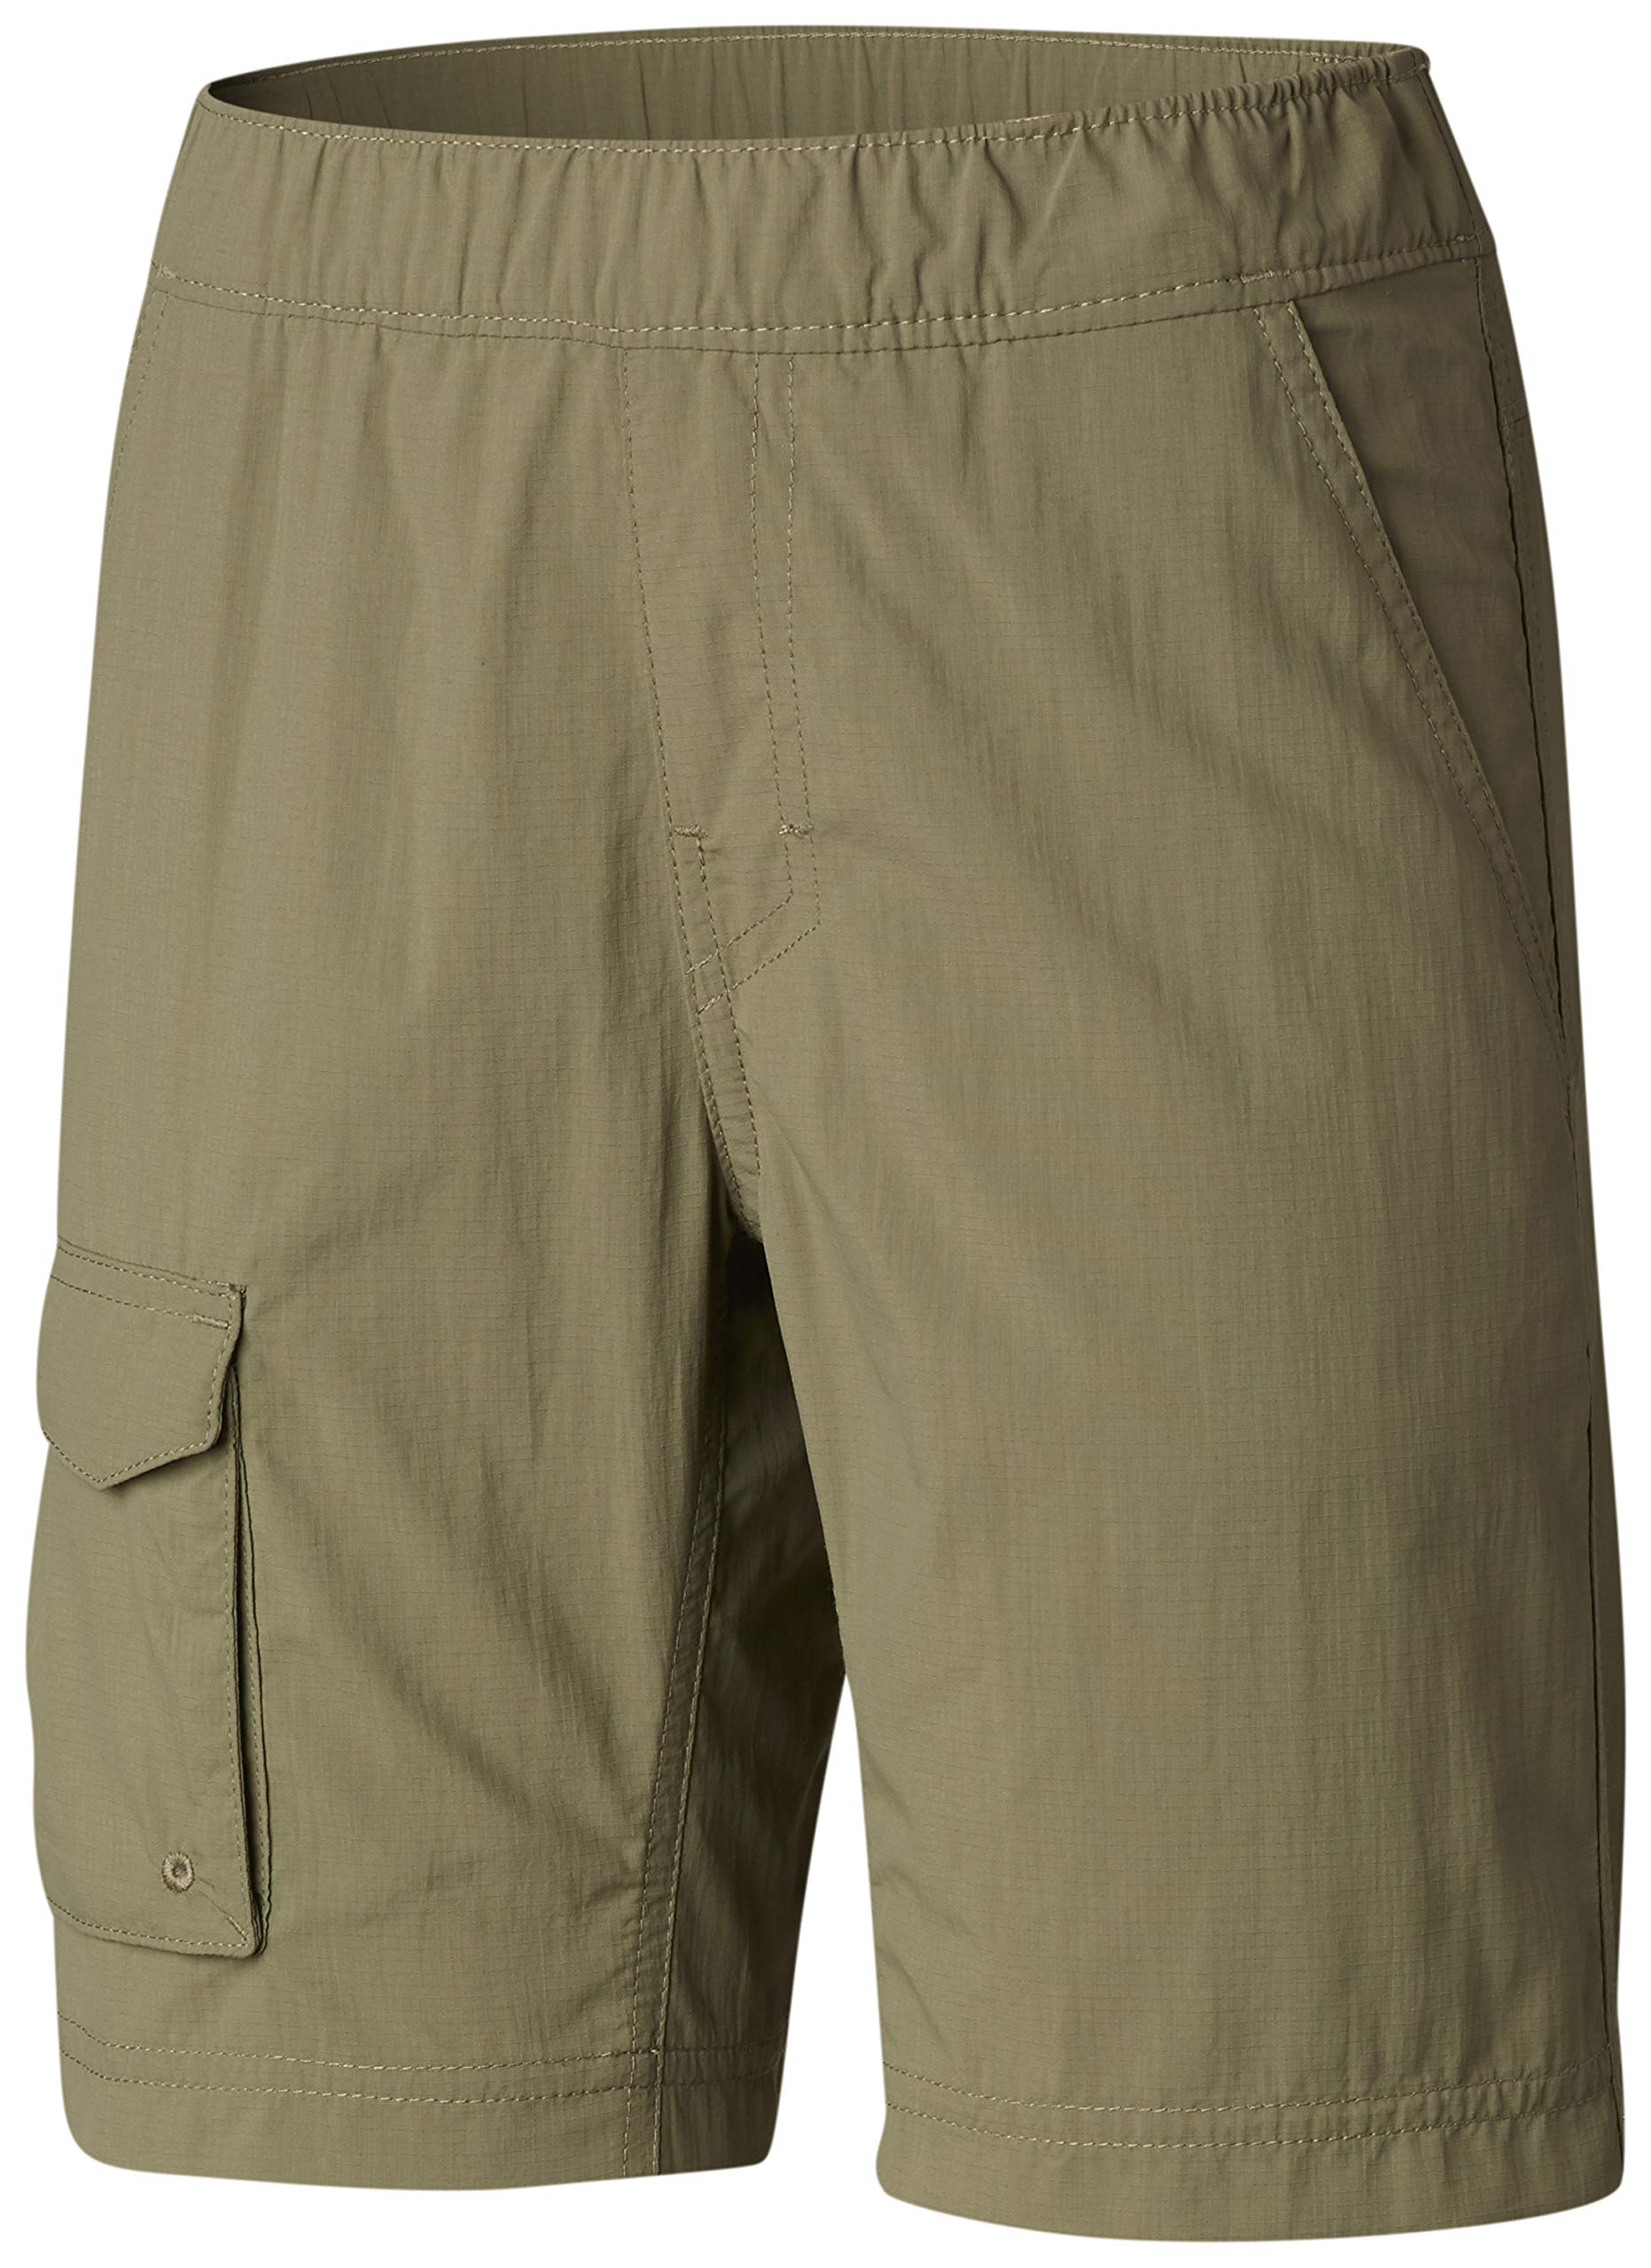 Columbia Youth Boys' Silver Ridge Pull-On Short, Breathable, UPF 30 Sun Protection, Large, Cypress by Columbia